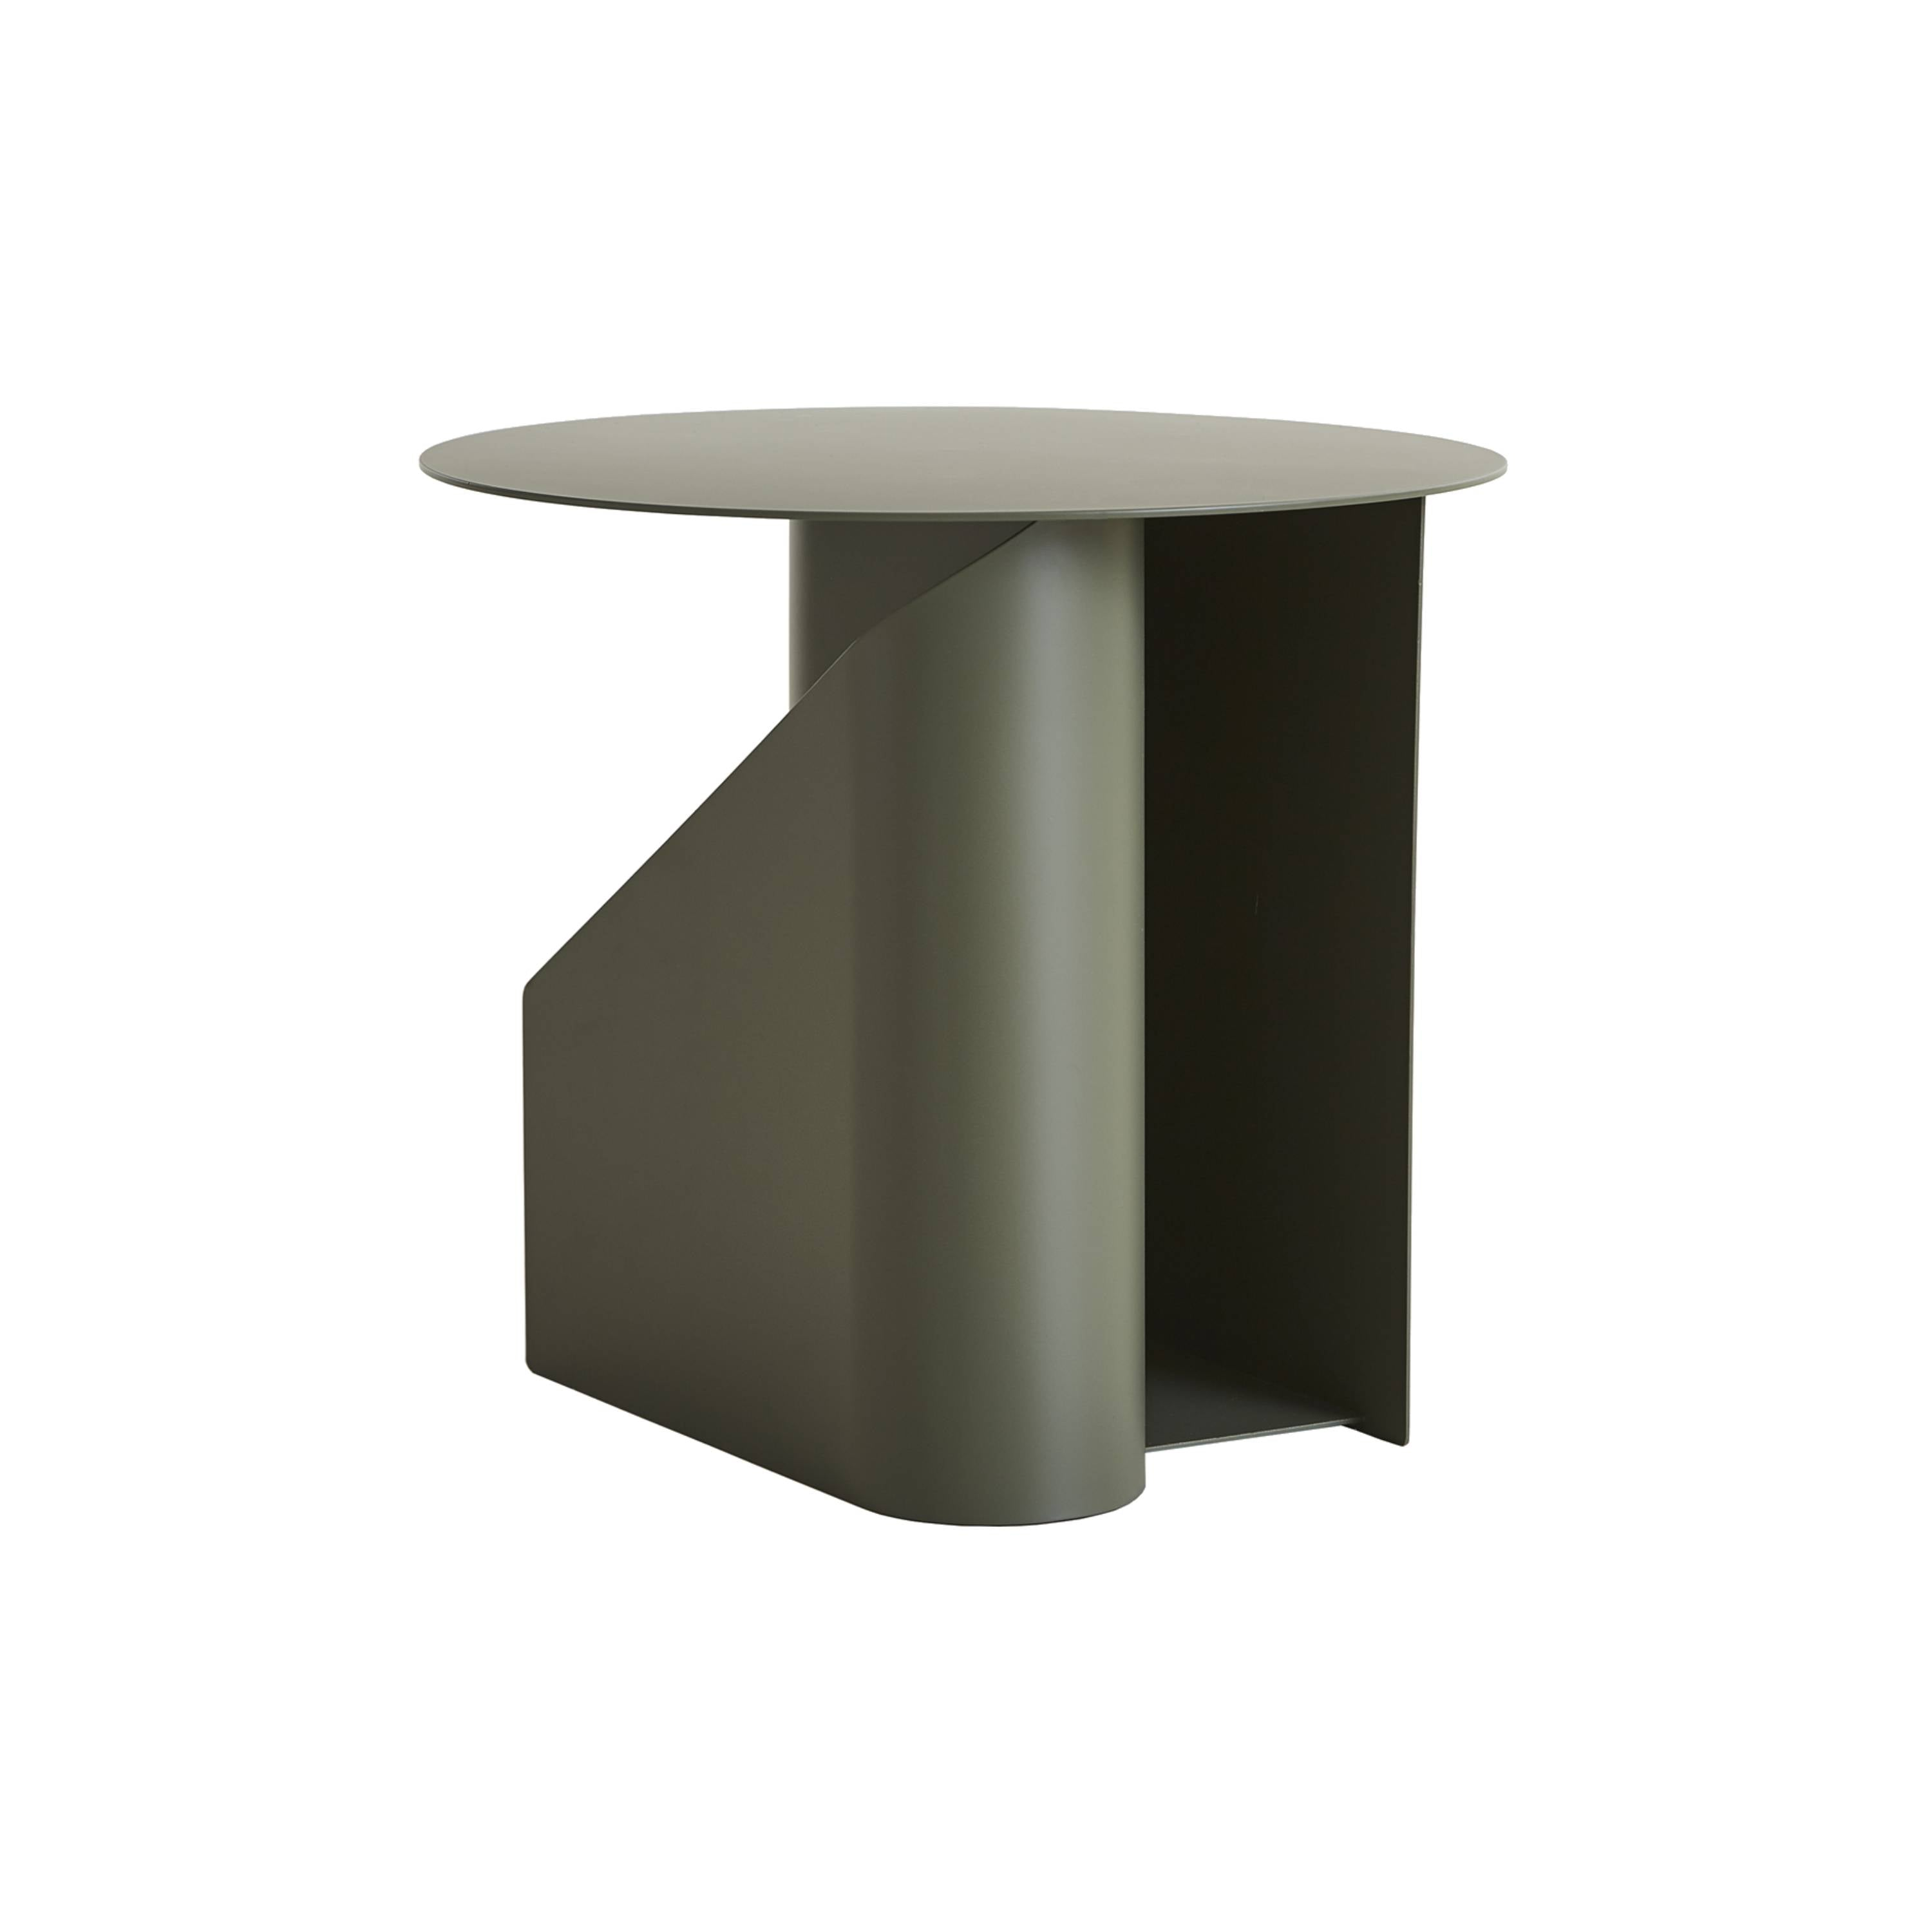 Sentrum Side Table: Dusty Green